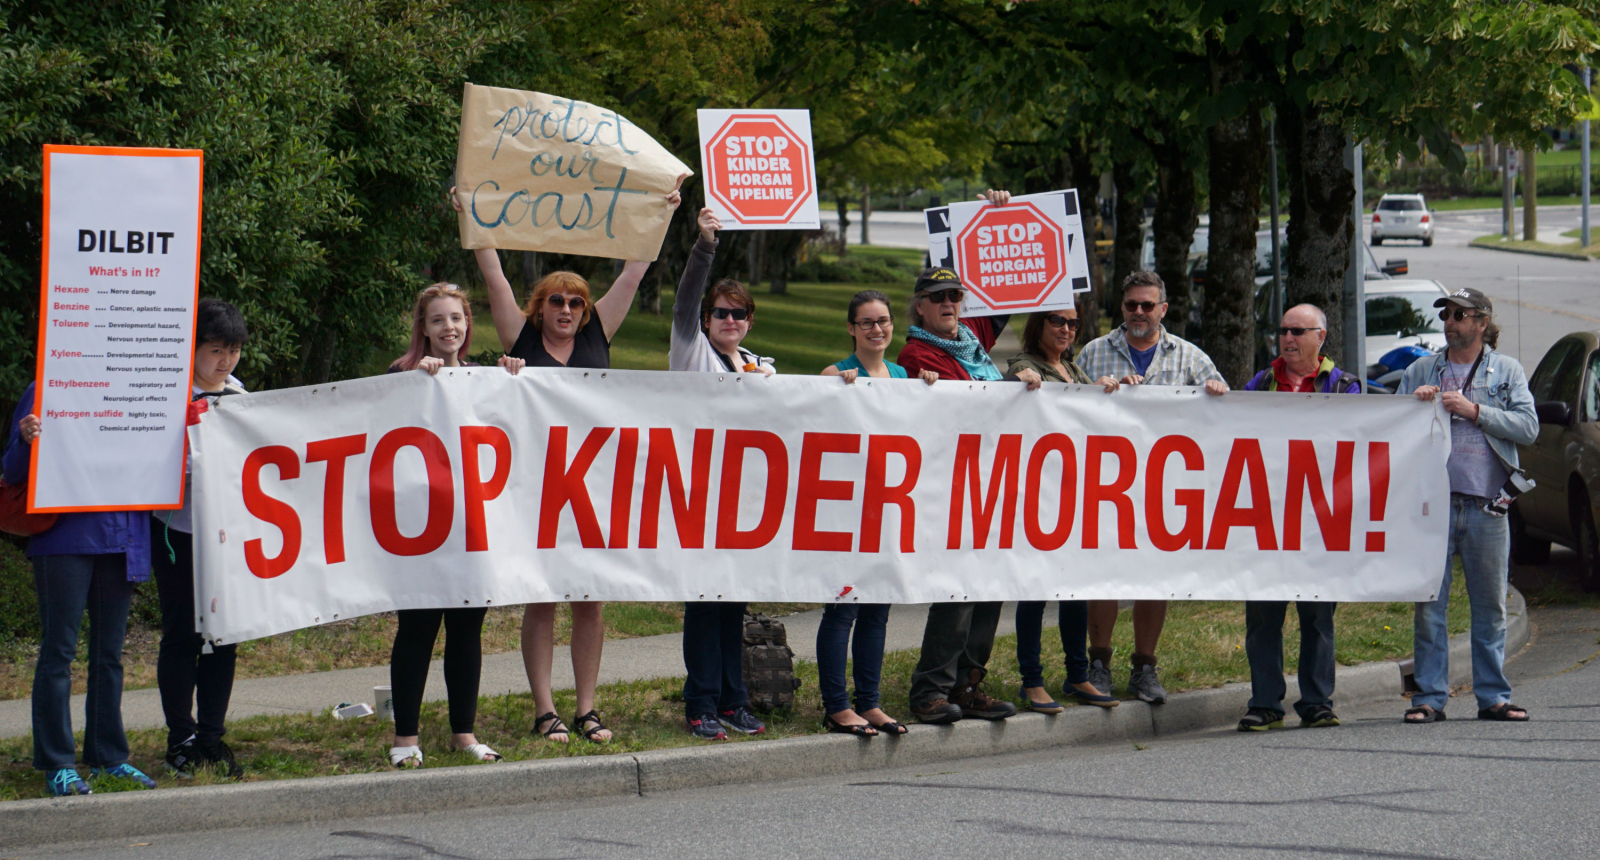 Kinder Morgan, Trans Mountain expansion, protest, demonstration, Burnaby